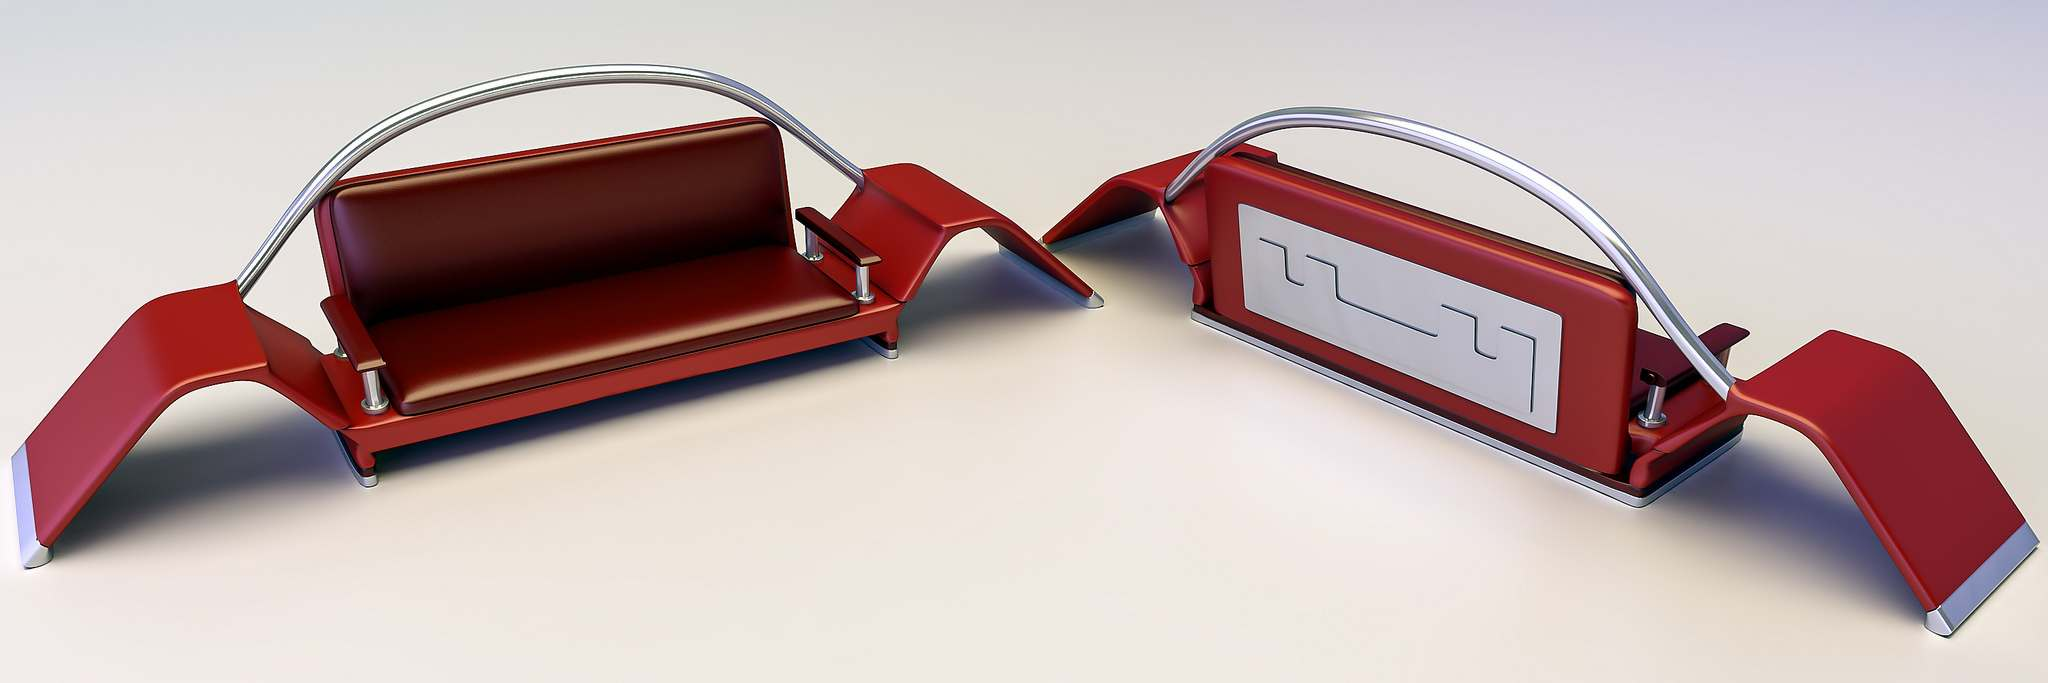 industrialdesign6 Industrial Design Modeled and Rendered in Modo by Mike Grauer